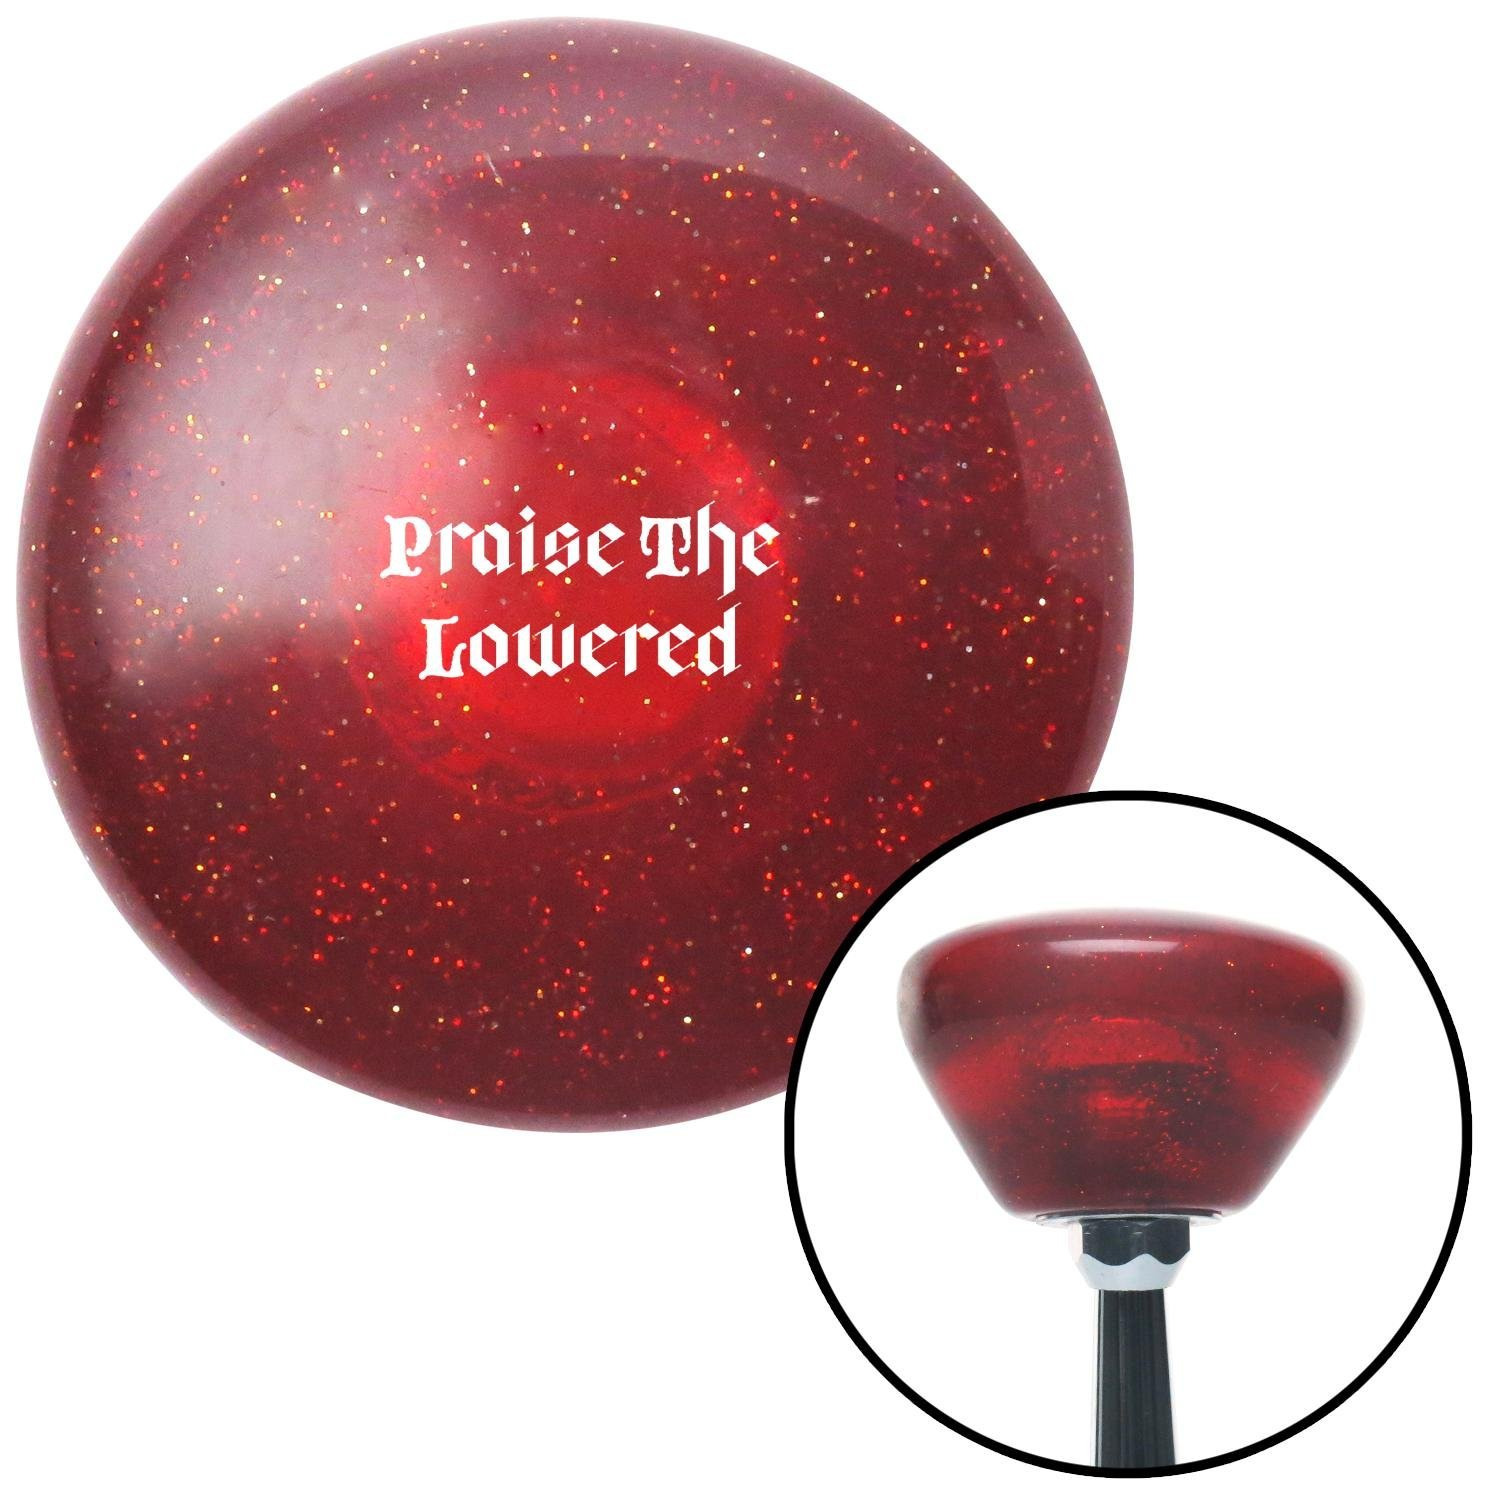 American Shifter 291310 Shift Knob White Praise The Lowered Red Retro Metal Flake with M16 x 1.5 Insert